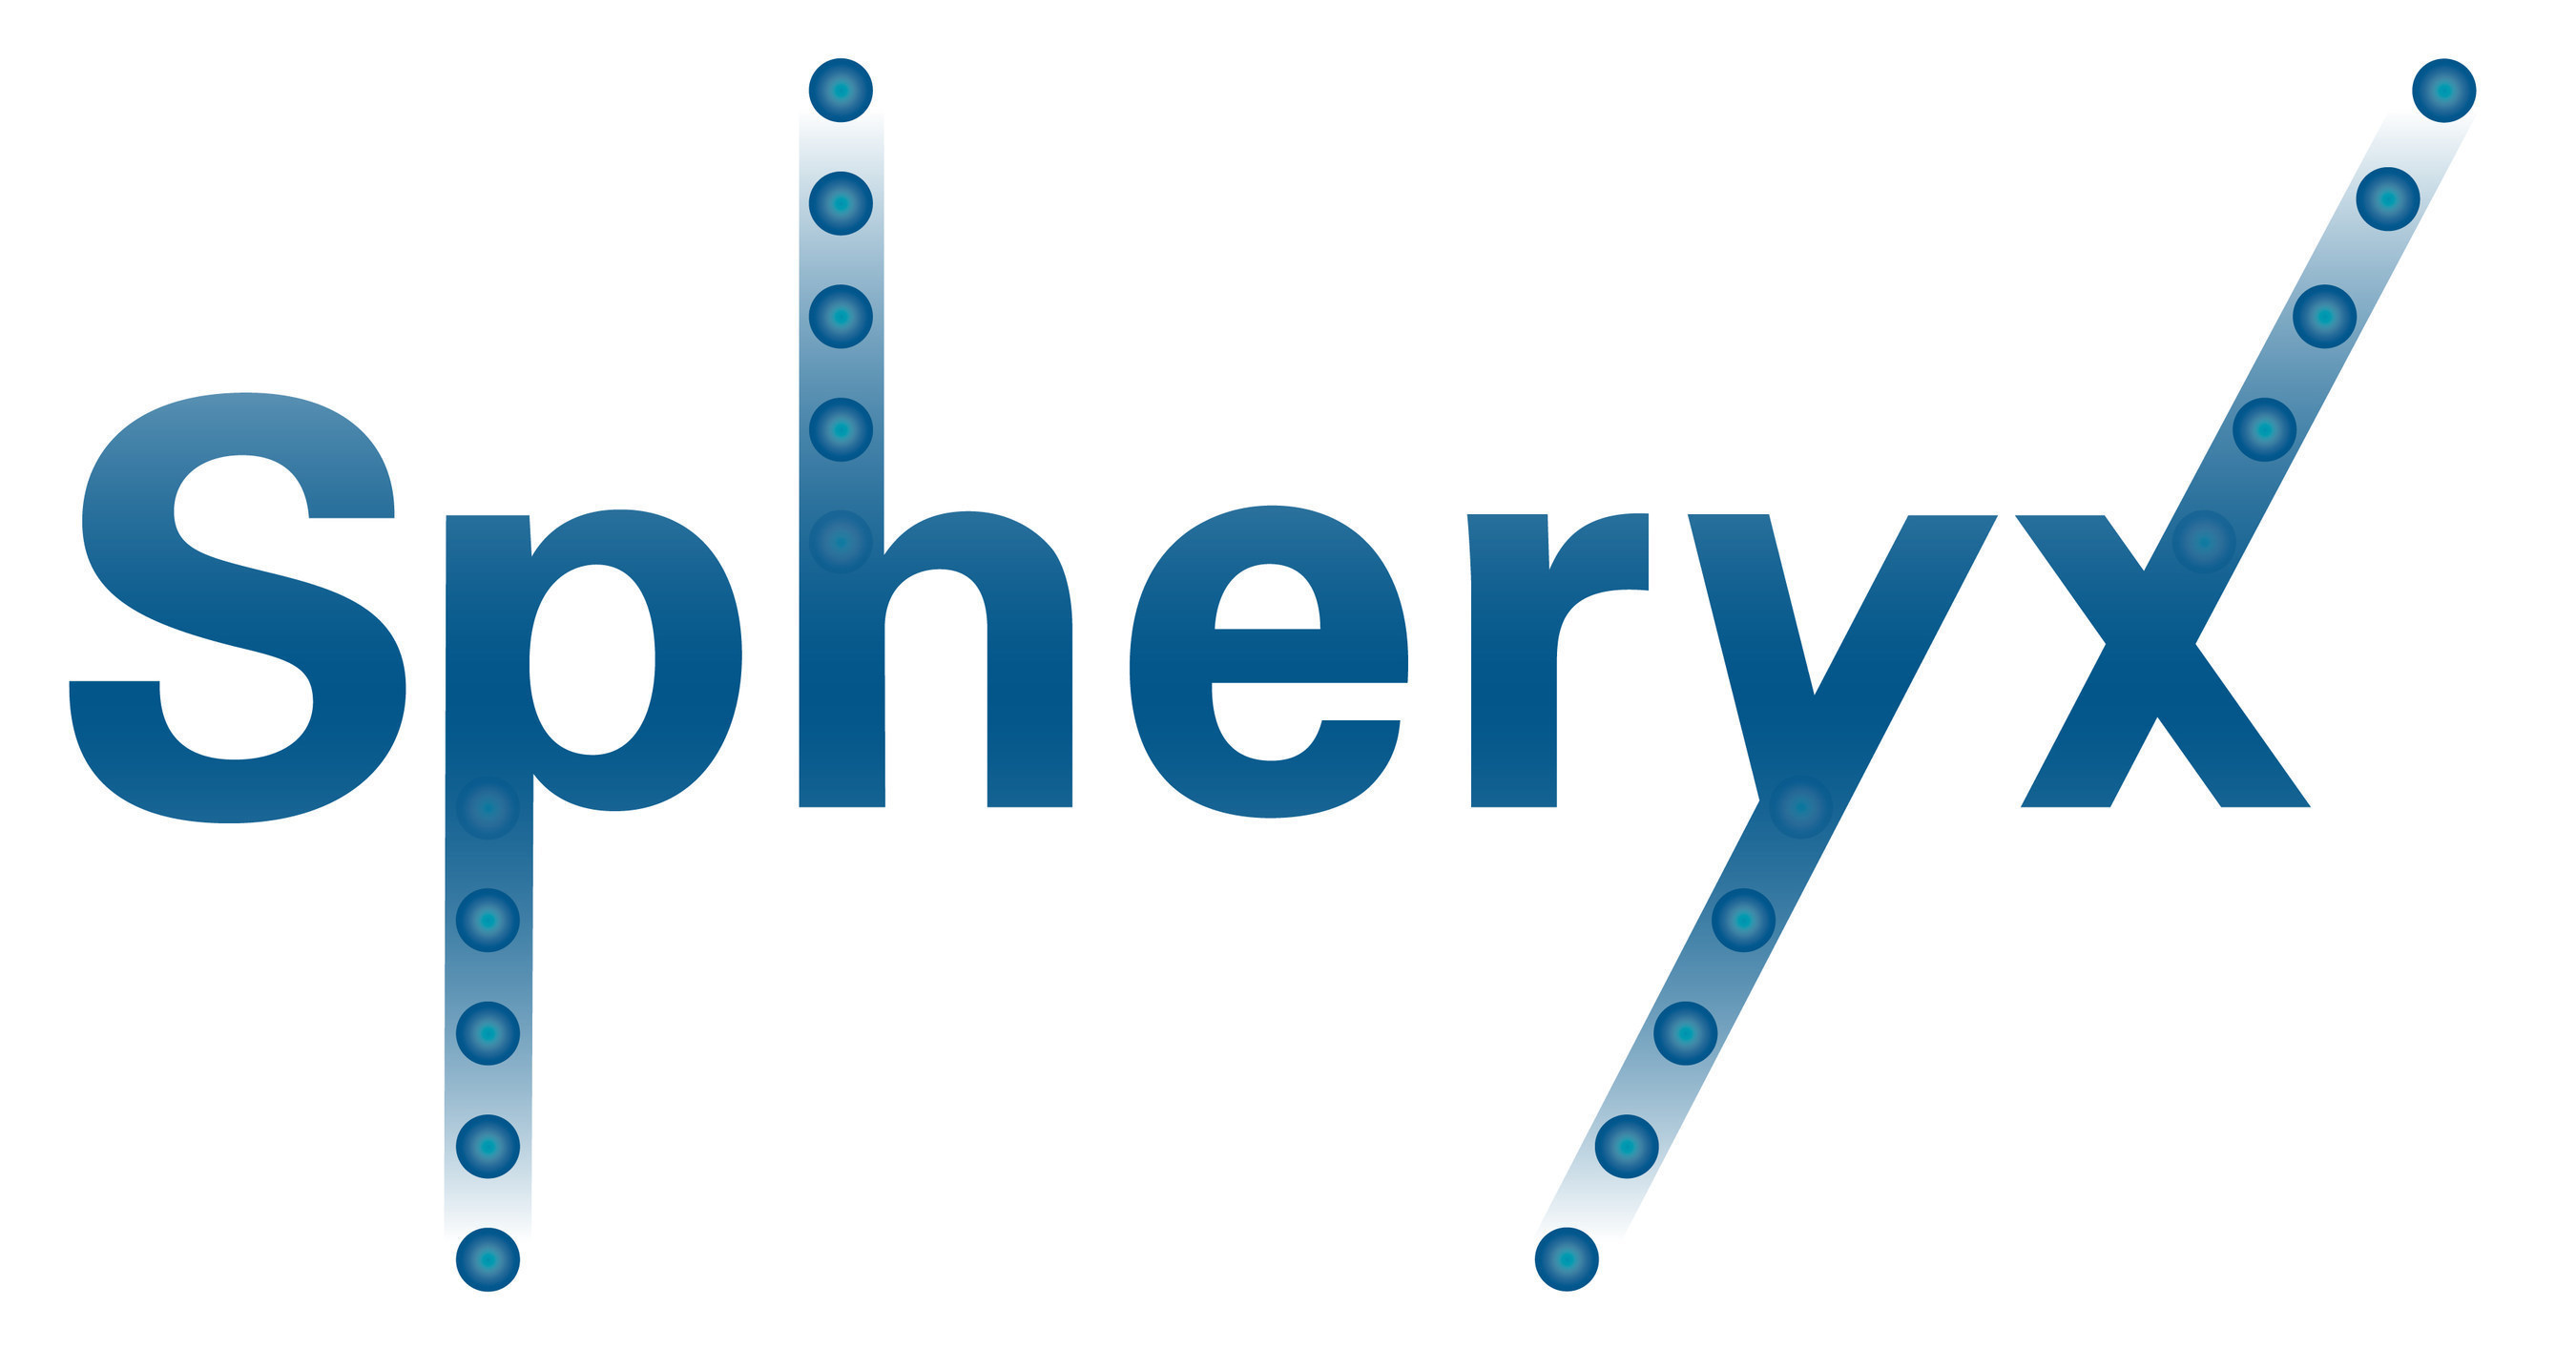 Spheryx Publishes Results On Semiconductor Polishing